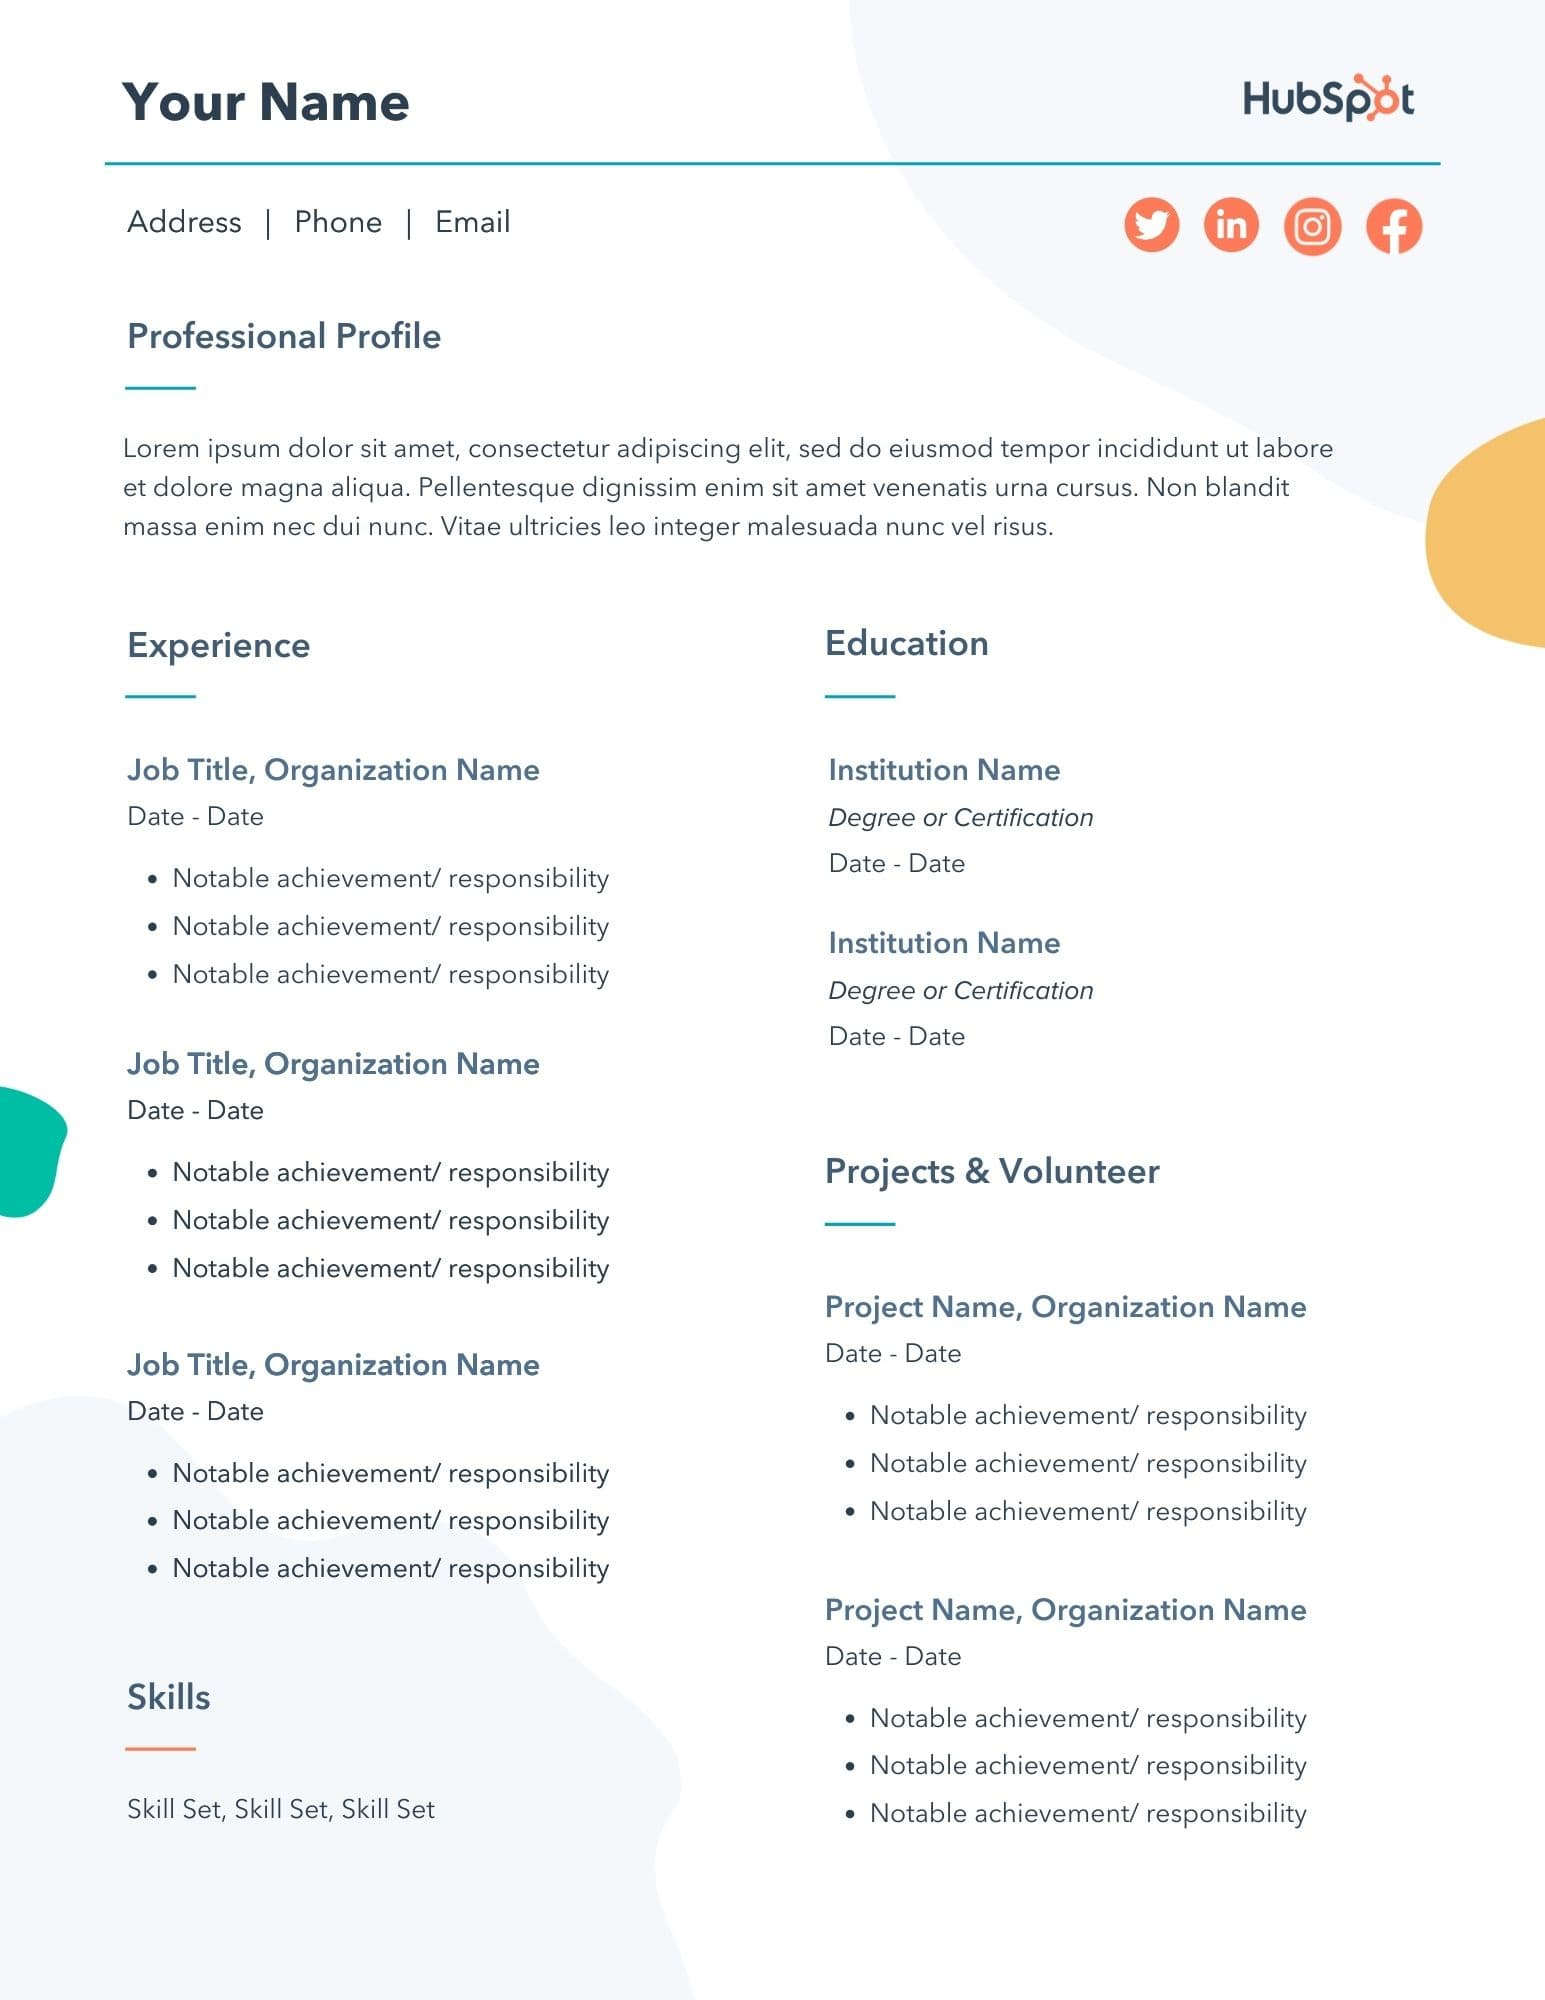 free resume templates for microsoft word to make your own builder document template Resume Resume Builder Word Document